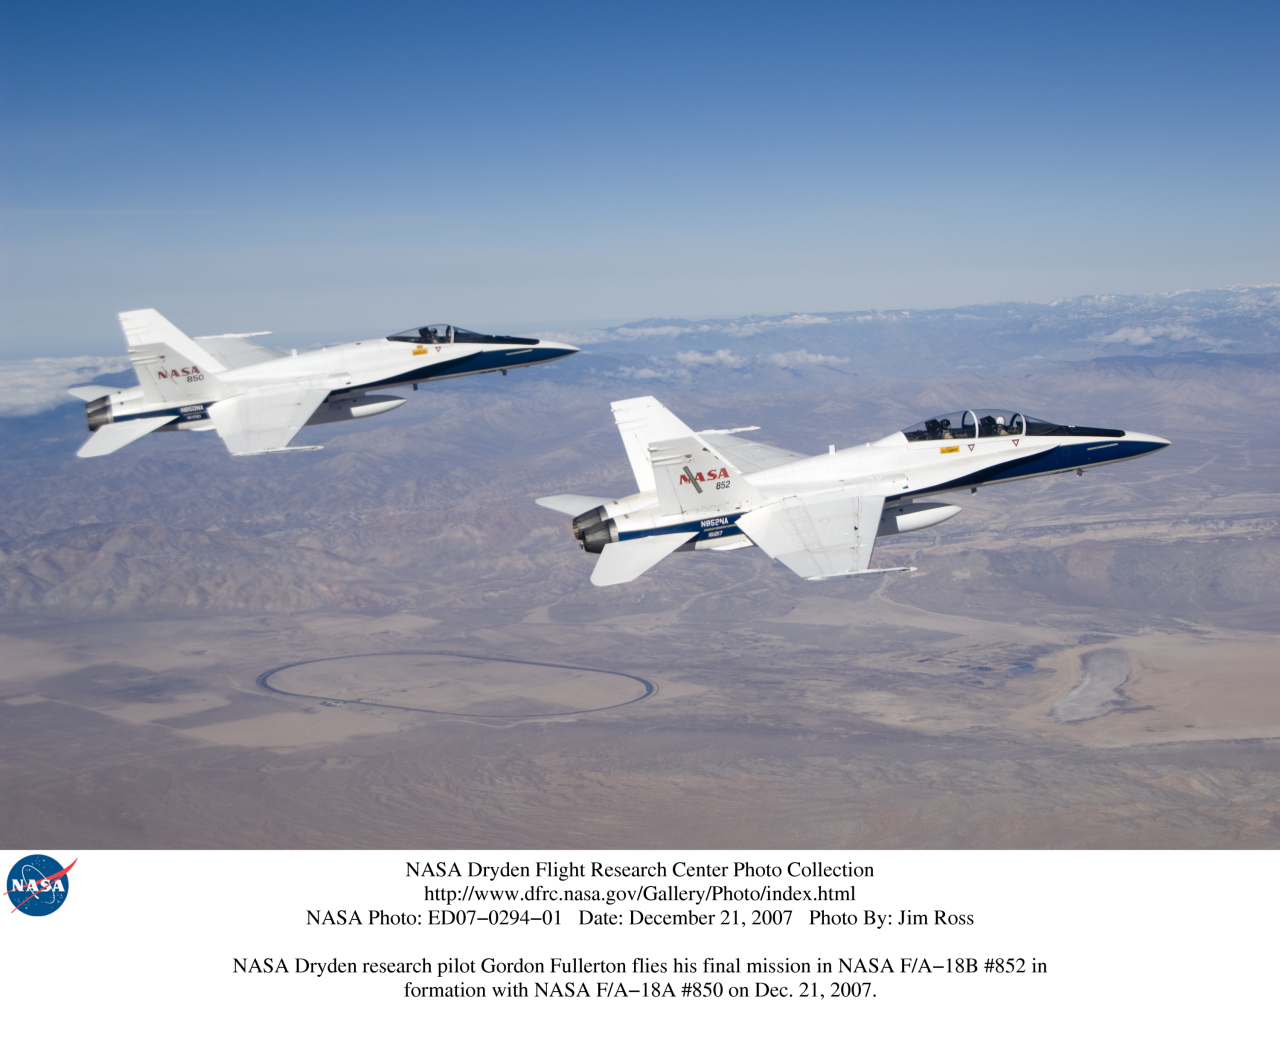 NASA Dryden F-18 Chase Aircraft Photo Collection